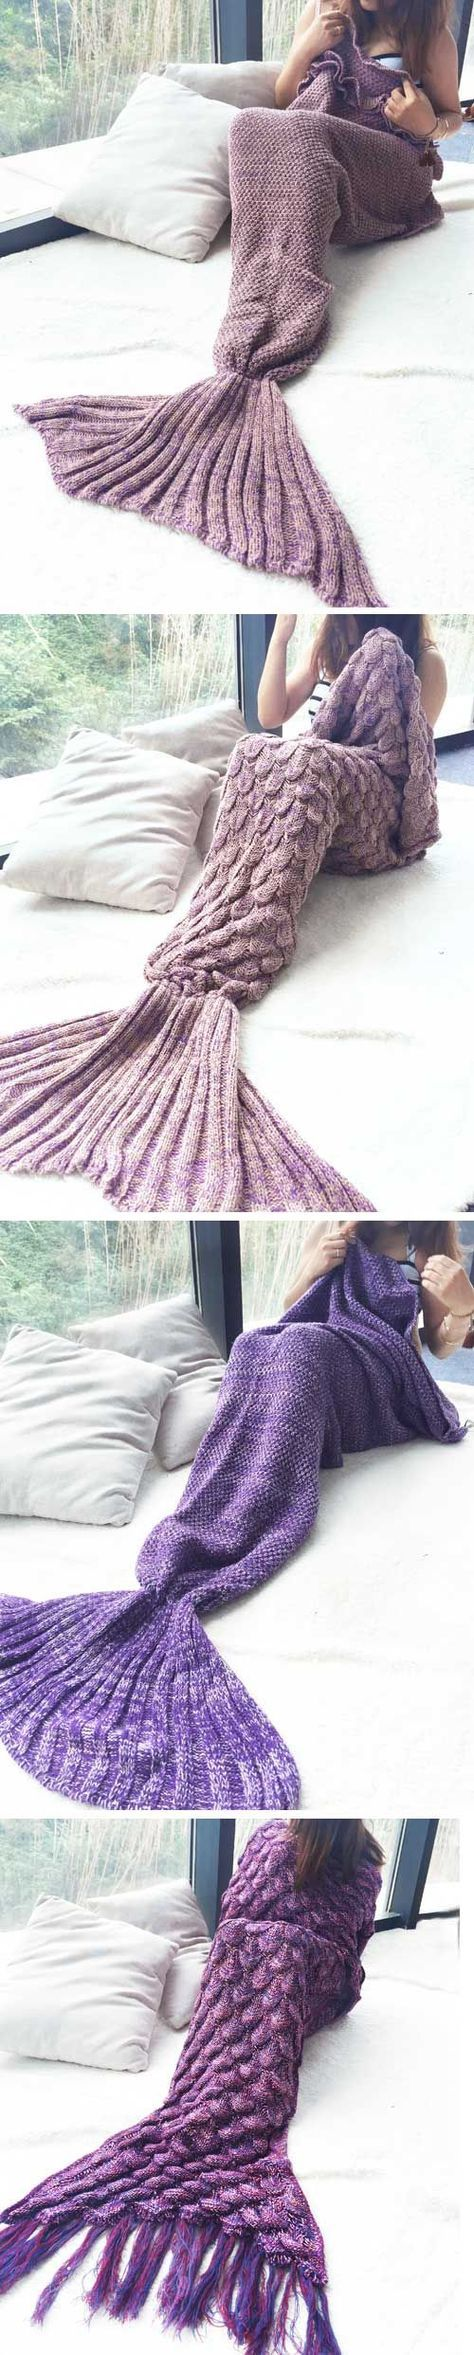 Pretty Mermaid Blanket Tail